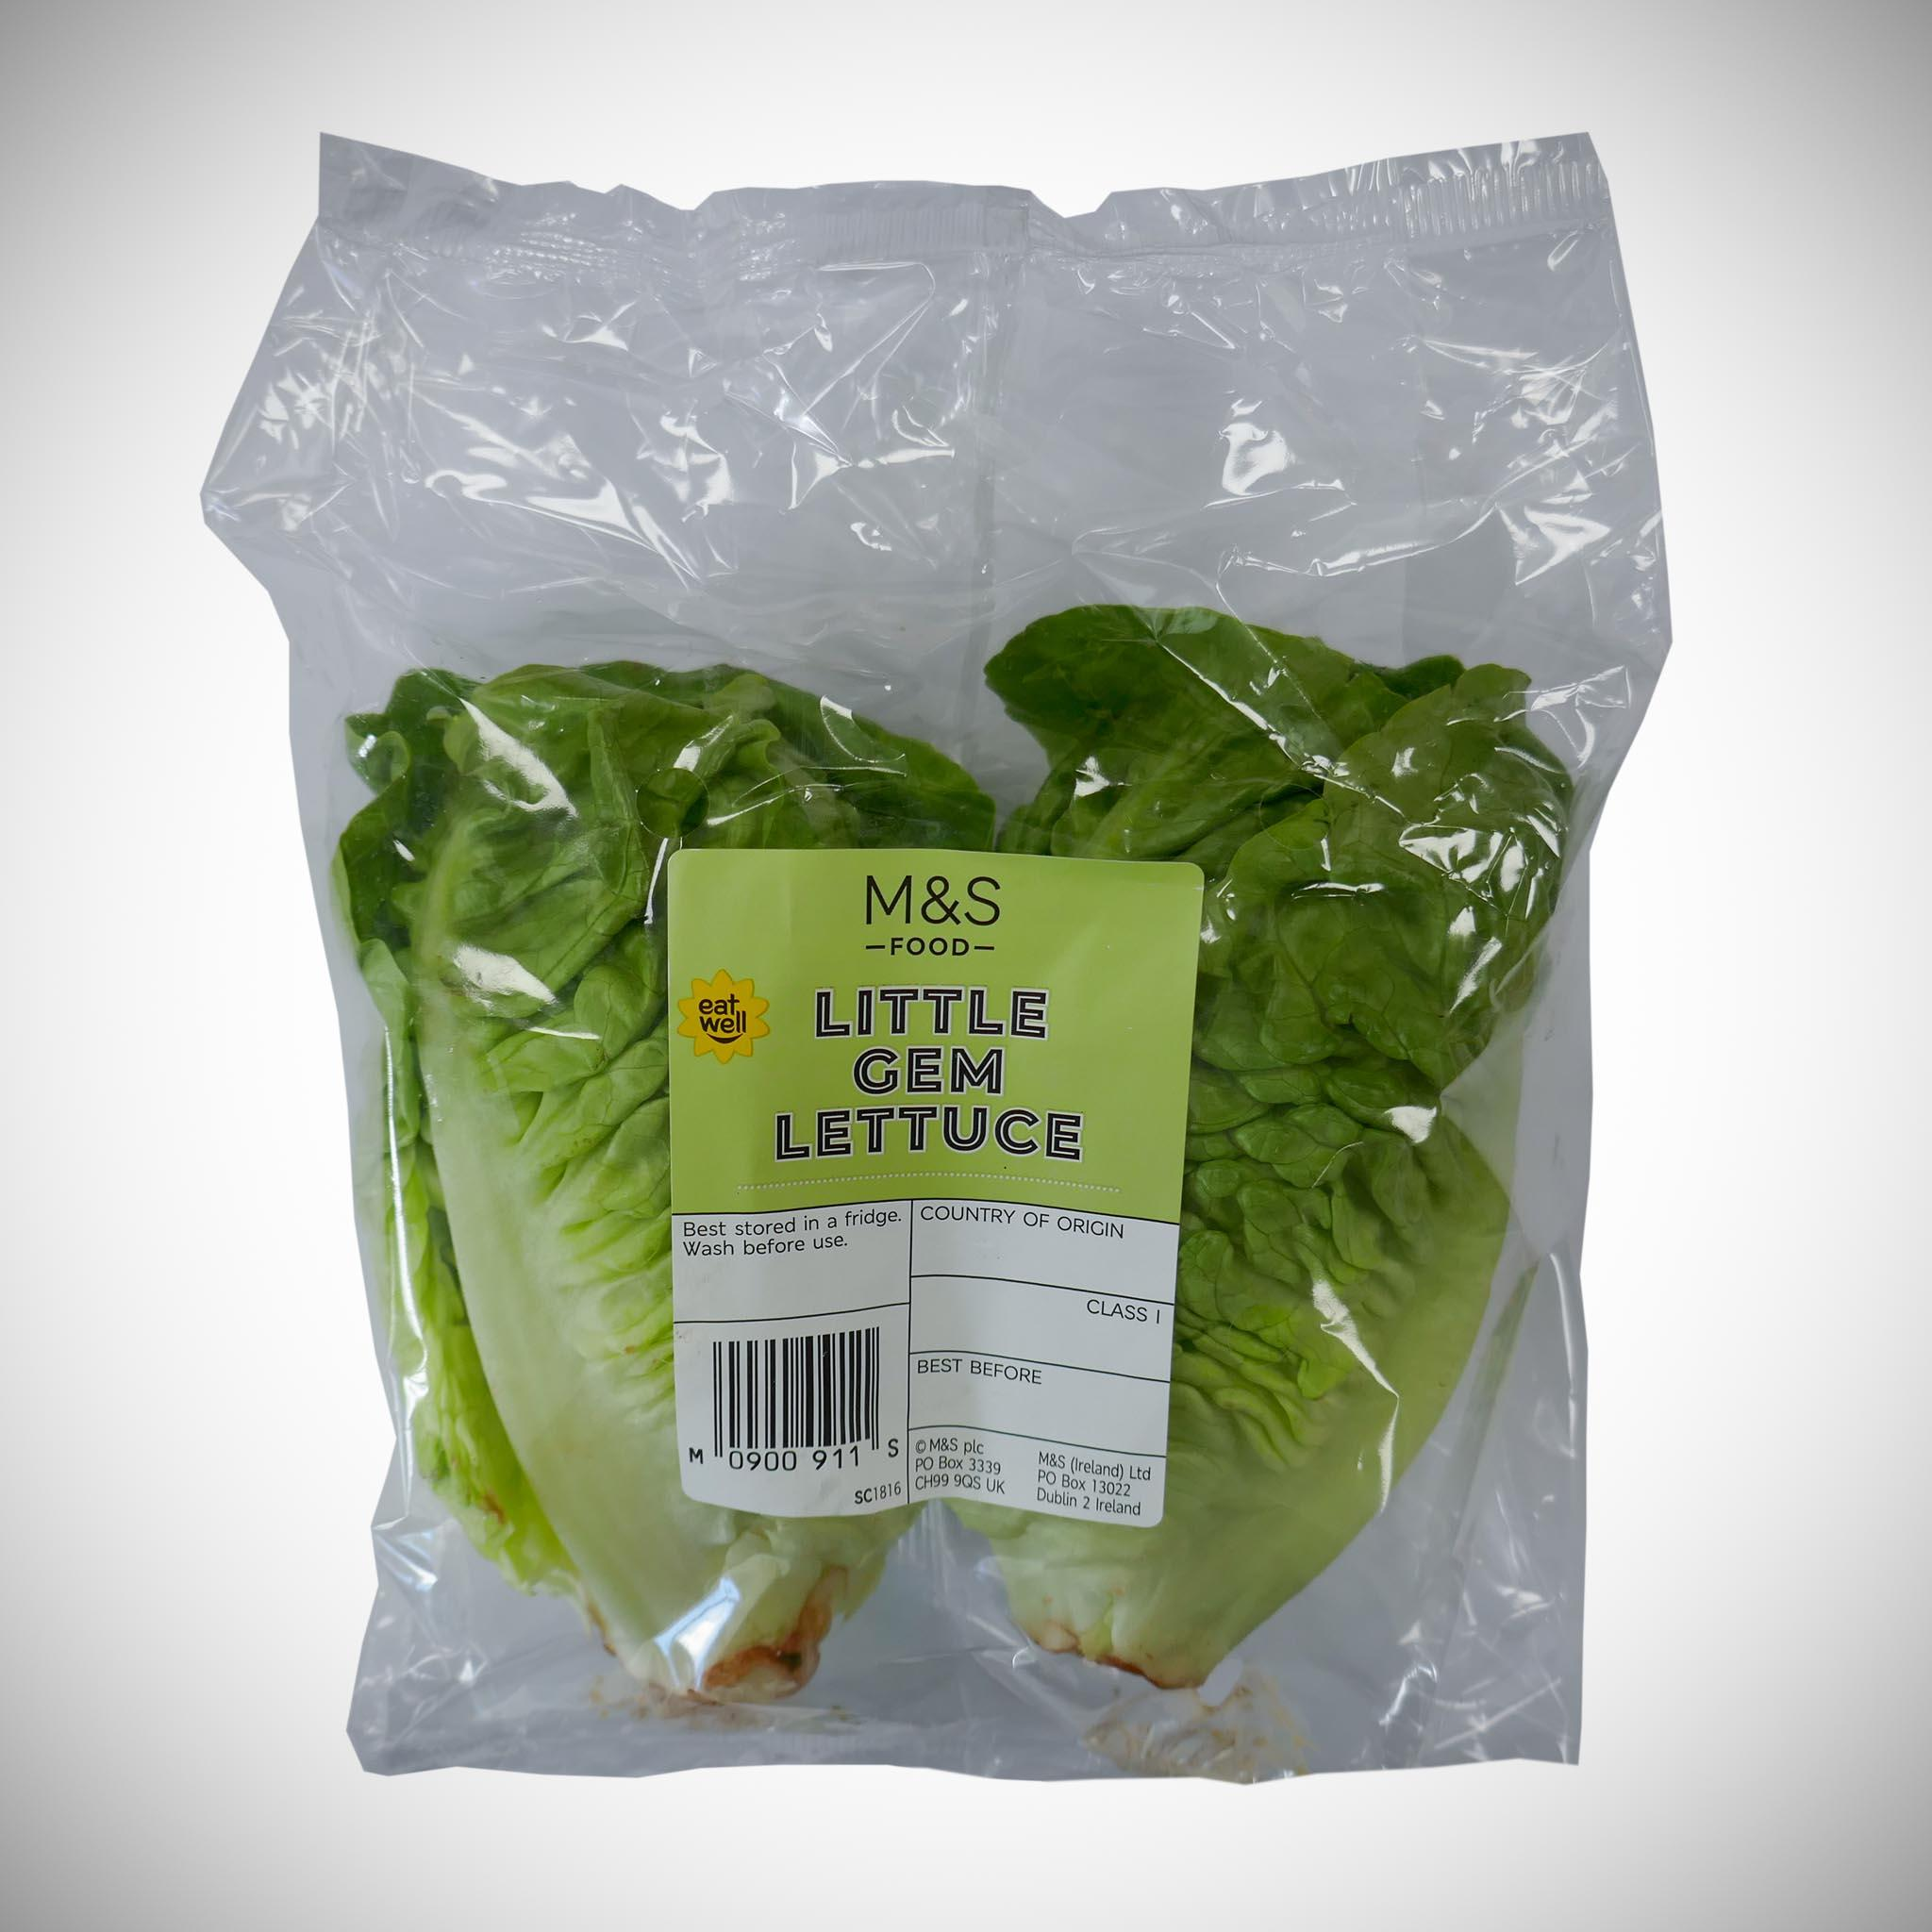 Little Gem Lettuce x 2